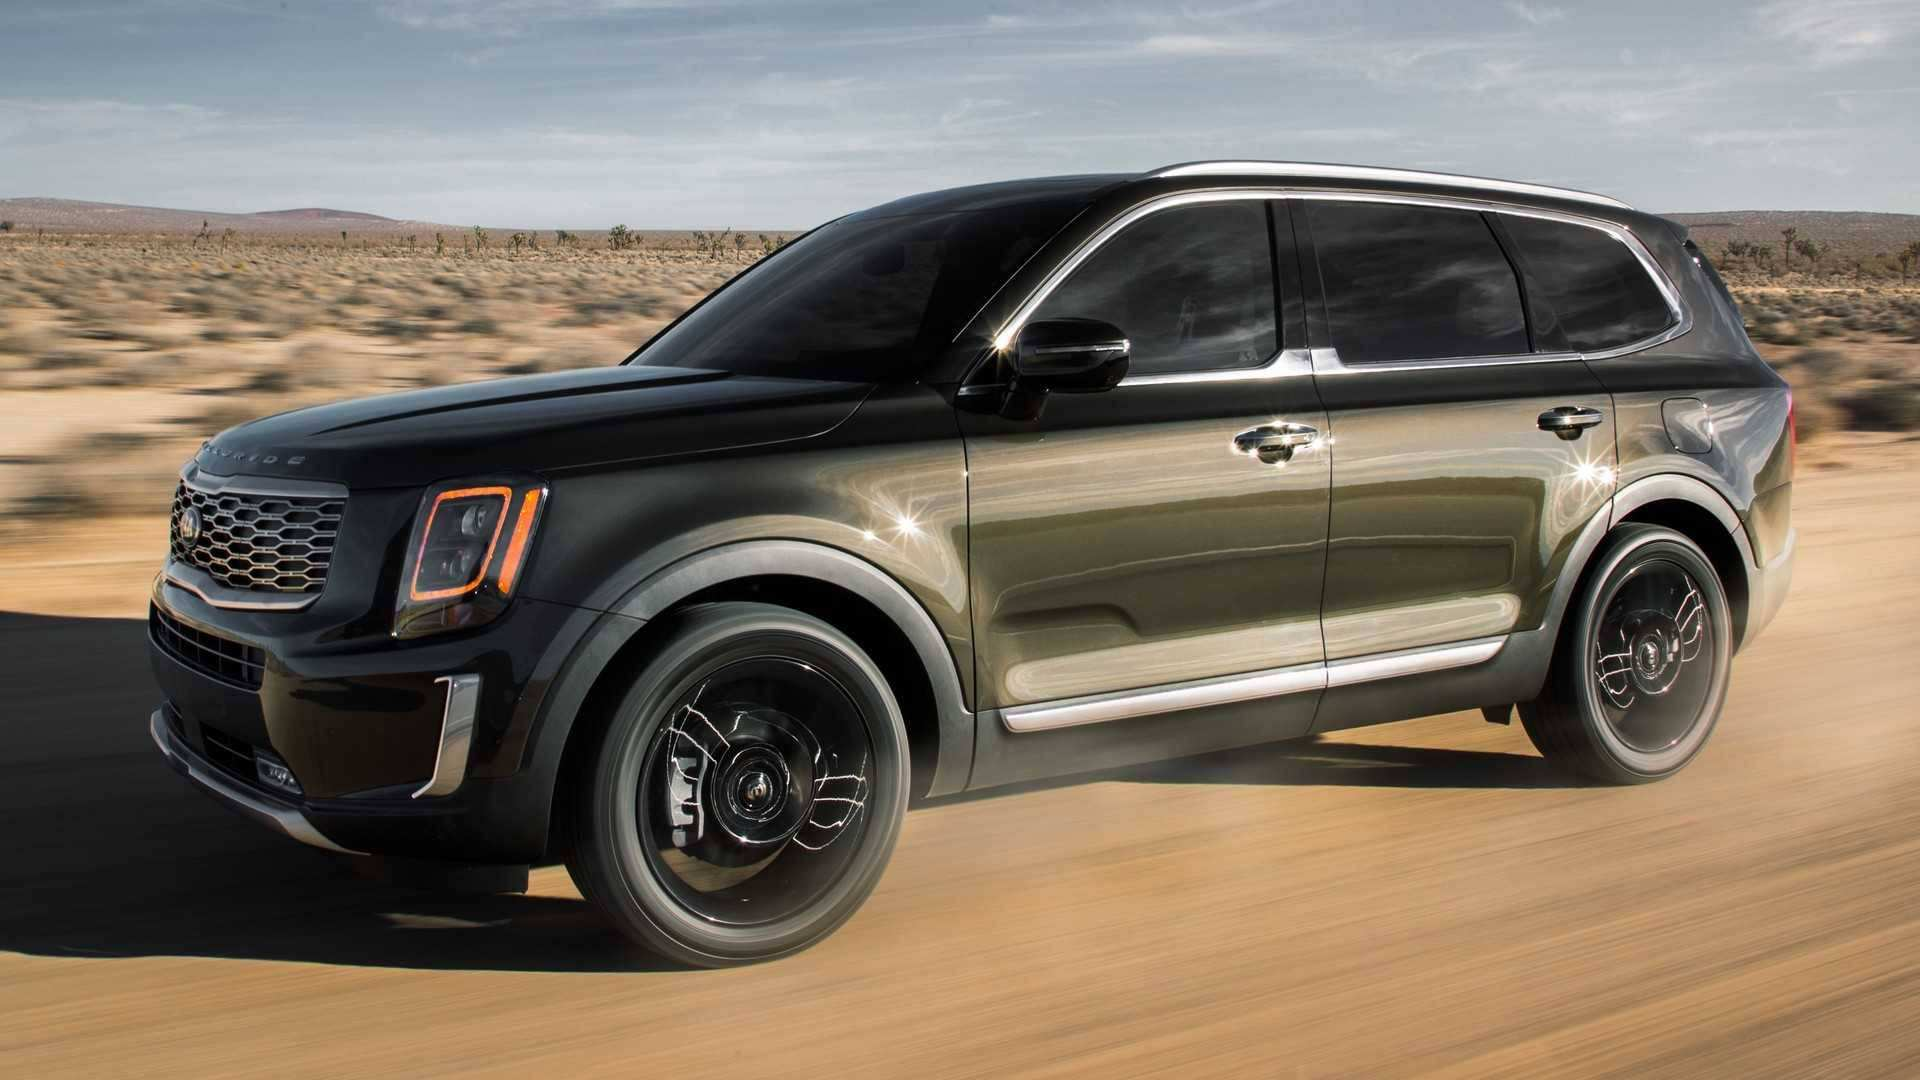 95 New 2020 Kia Telluride Video Concept by 2020 Kia Telluride Video